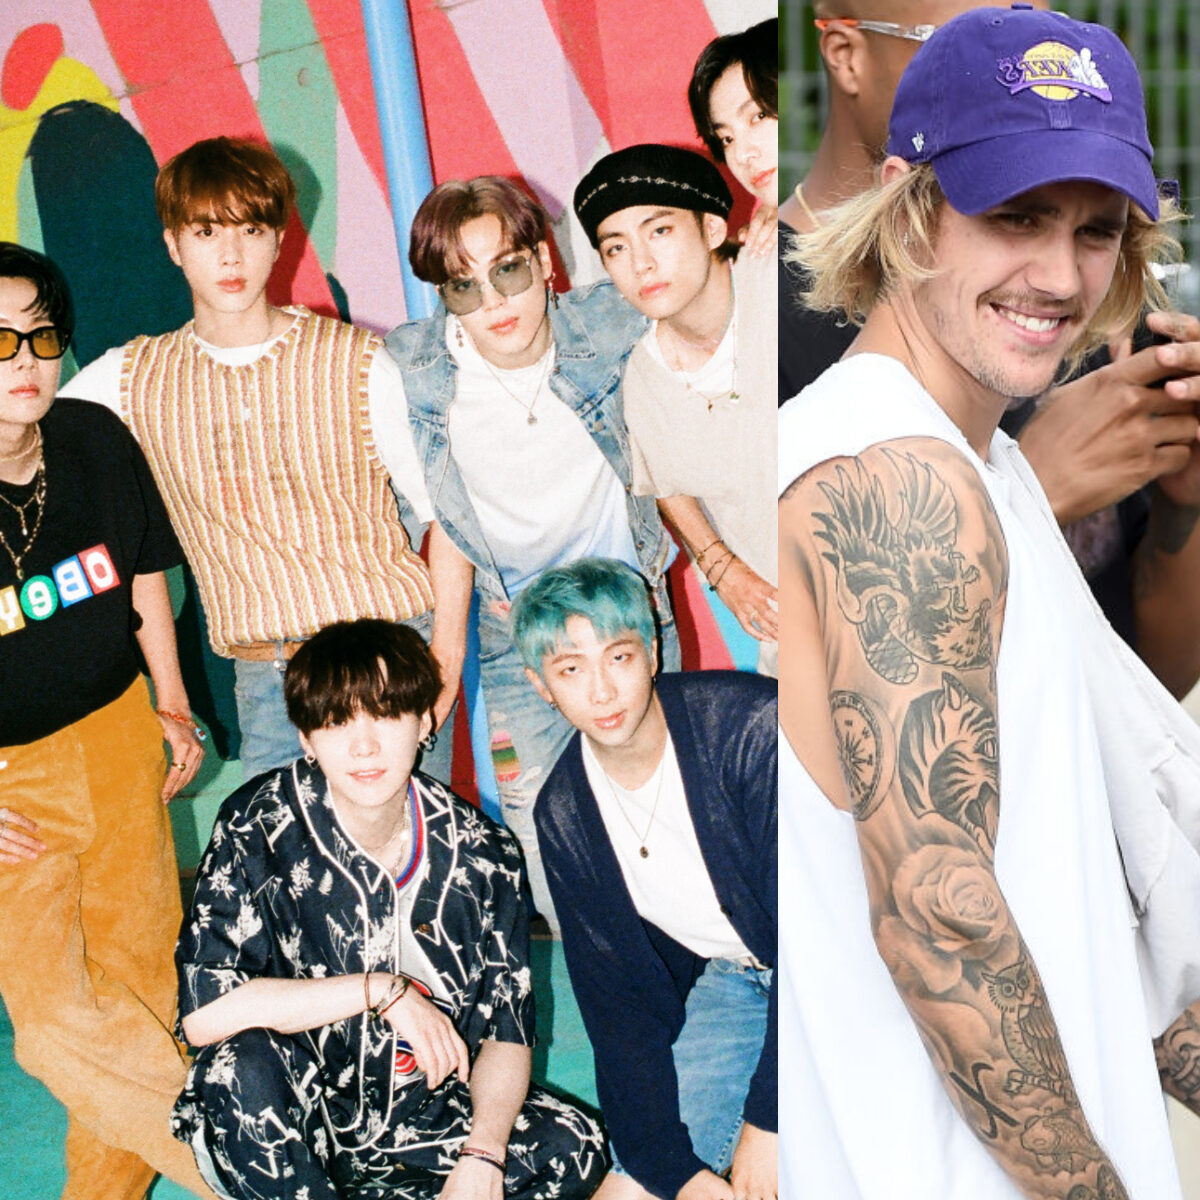 Justin Bieber Explains Why The BTS Song is Crushing It